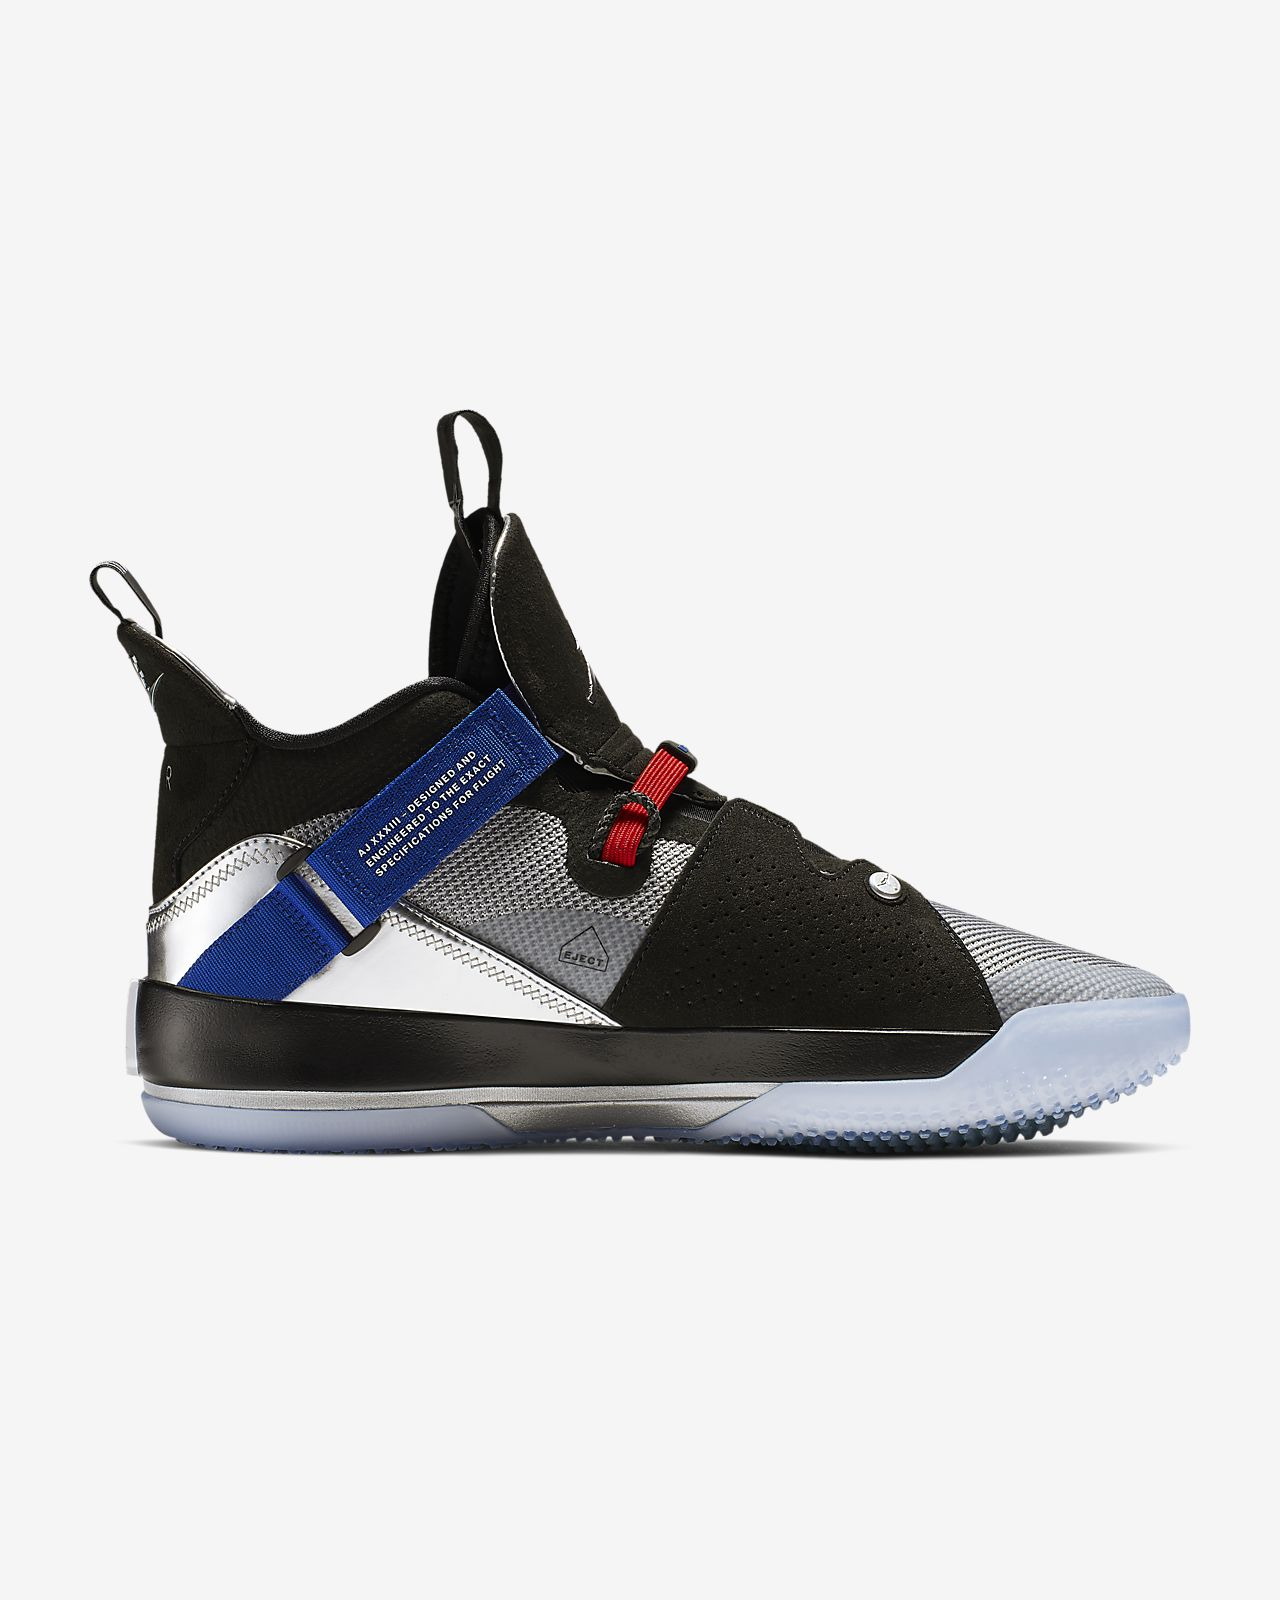 sports shoes 0615d 4551c Low Resolution Air Jordan XXXIII Basketball Shoe Air Jordan XXXIII Basketball  Shoe